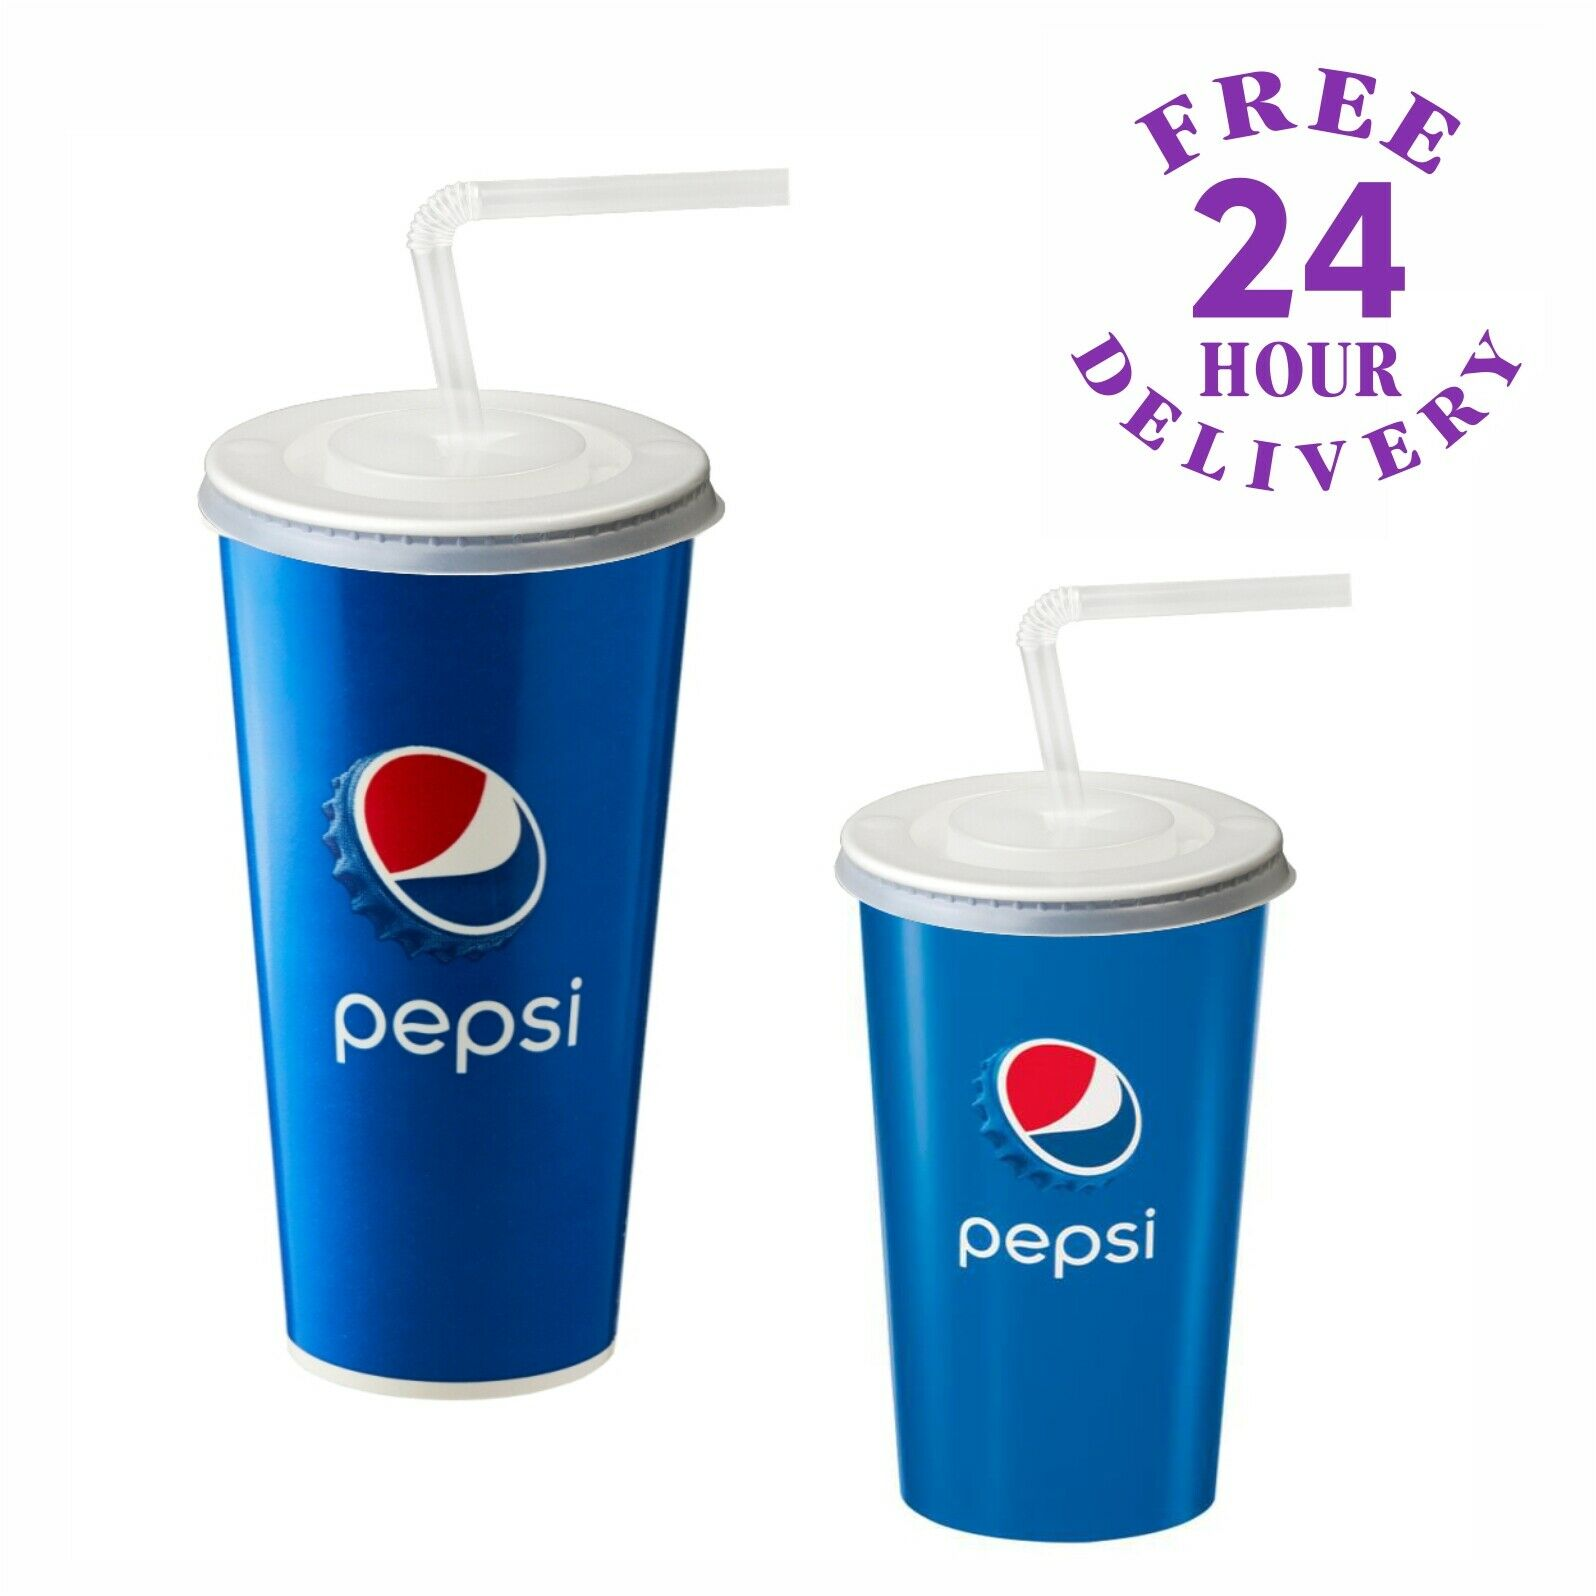 500 x 9oz Pepsi Paper Cups With Lids & Straws - Cold Drinks Cup Fizzy Coca Cola